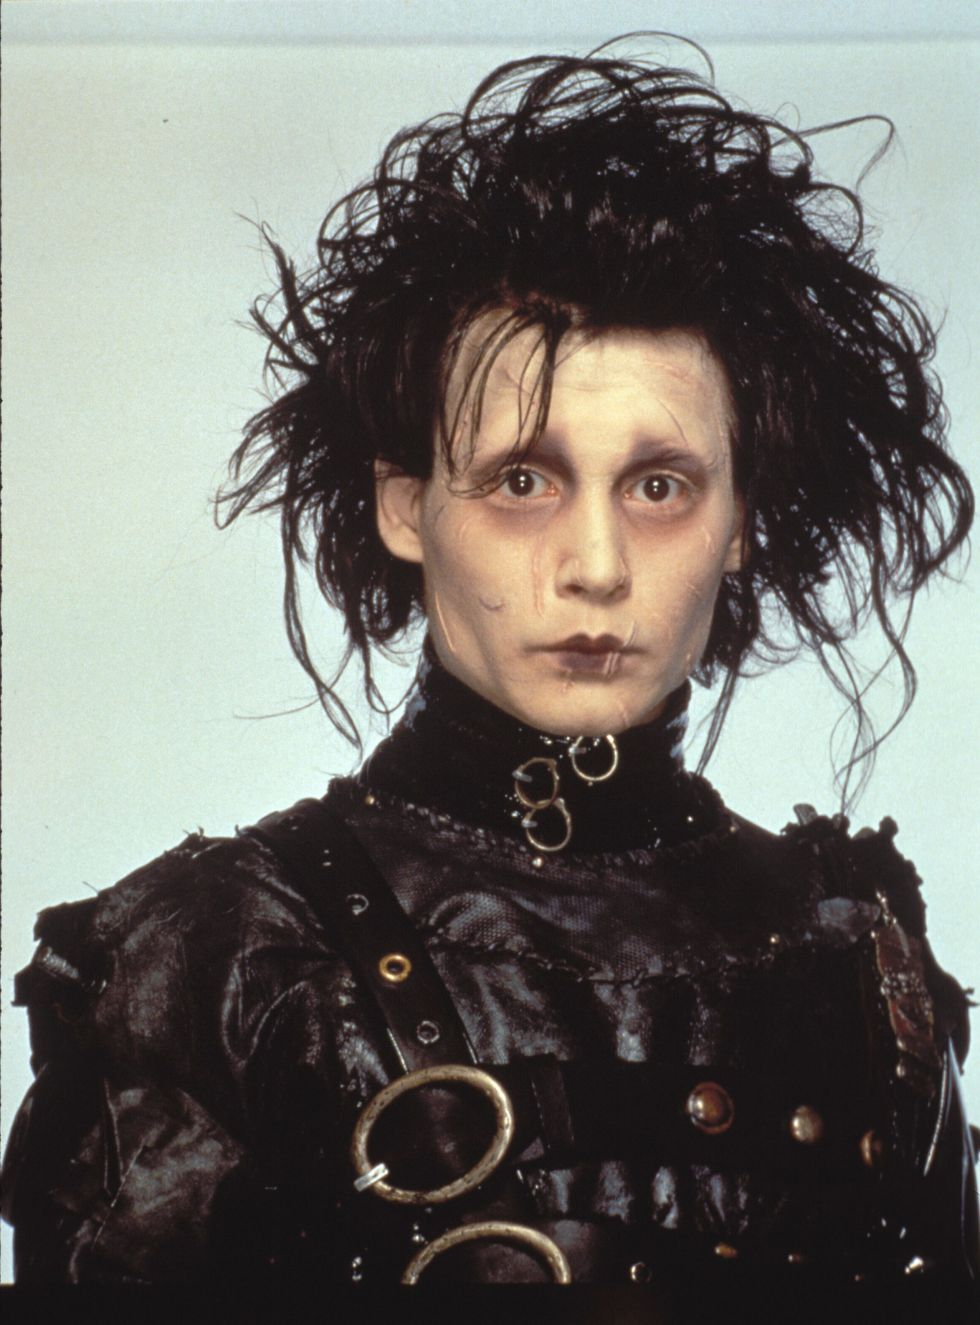 Fotos: Johnny Depp cum... Helena Bonham Carter Movies